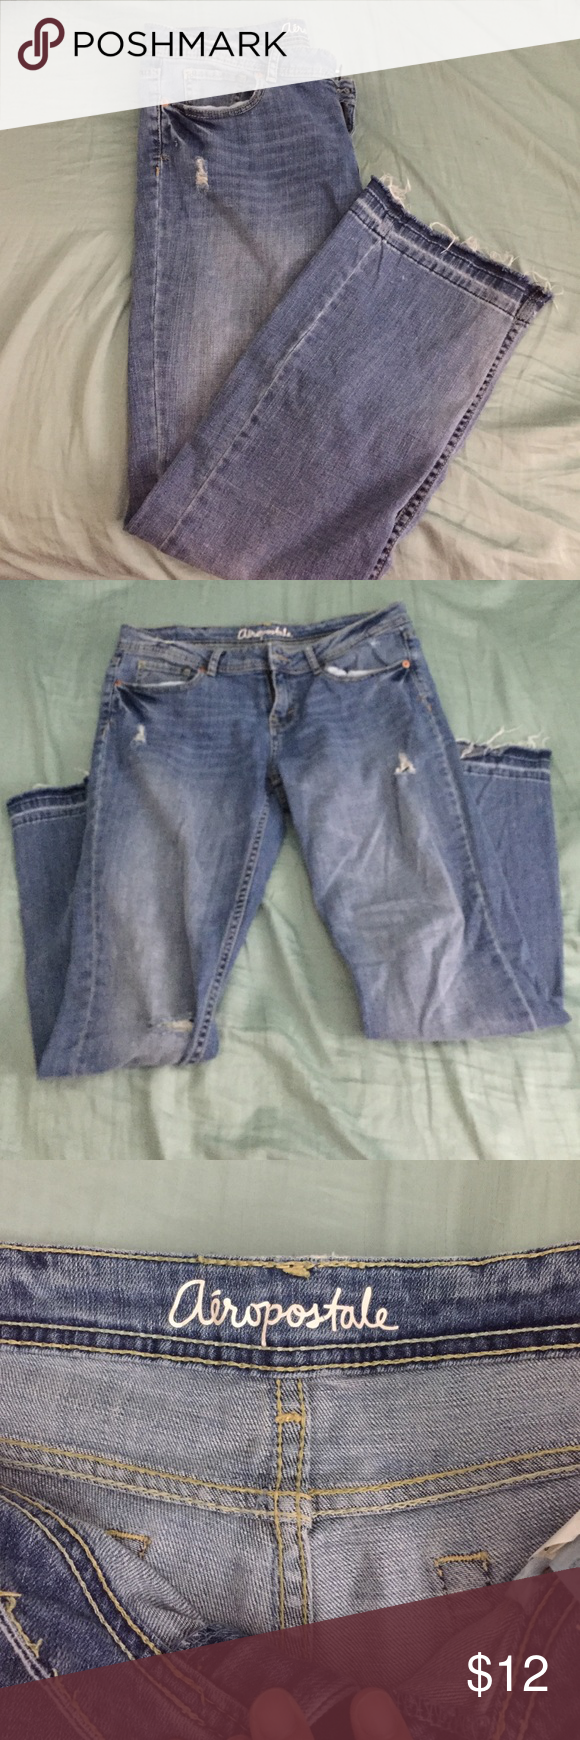 Chelsea Boot cut distressed jeans Short chelsea boot length jeans Aeropostale Pants Boot Cut & Flare